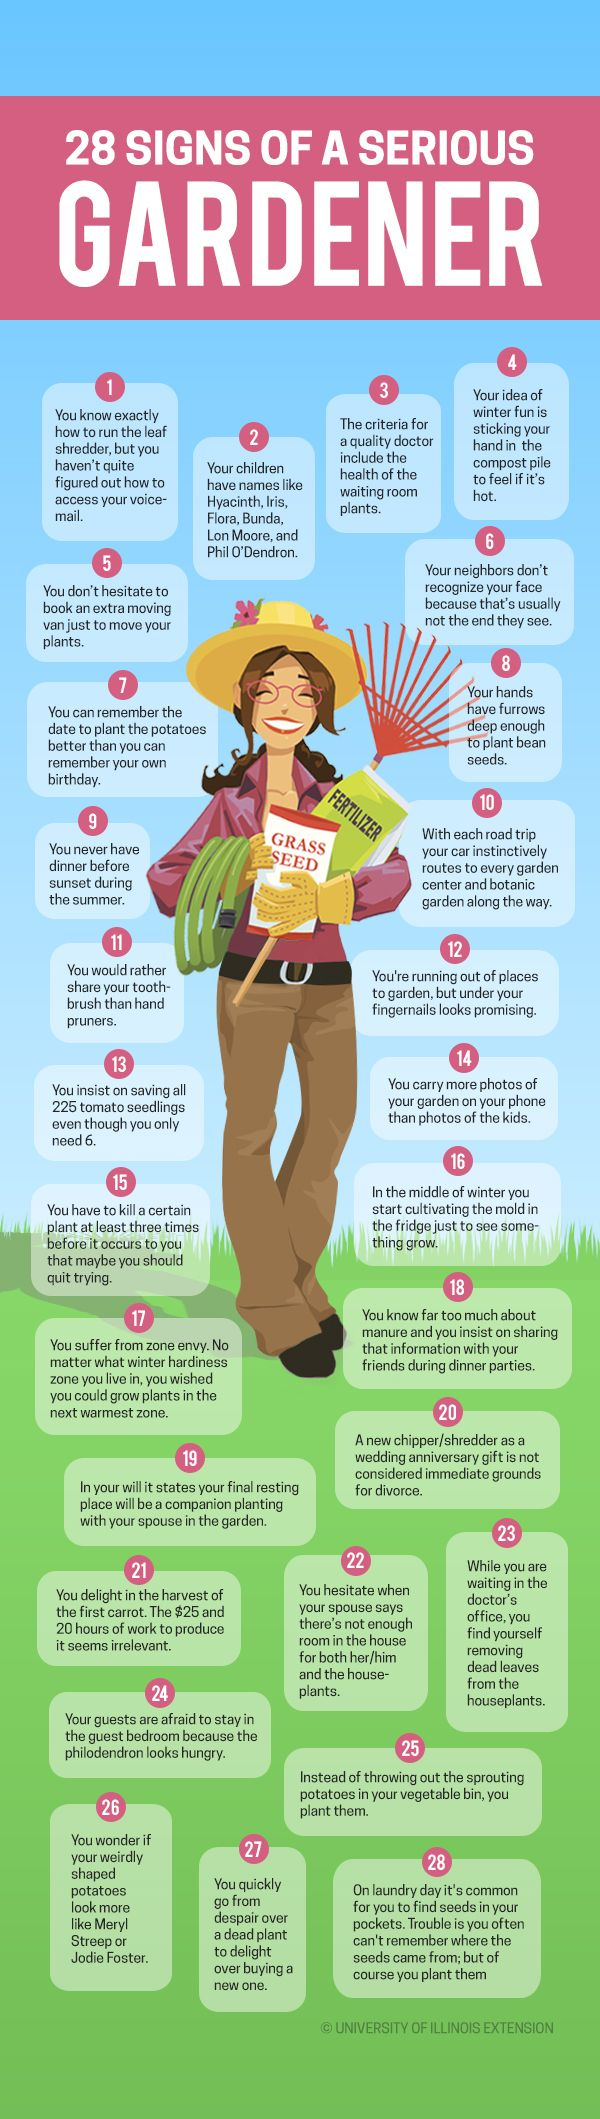 28 Signs You're a Serious Gardener #infographic #funny #list